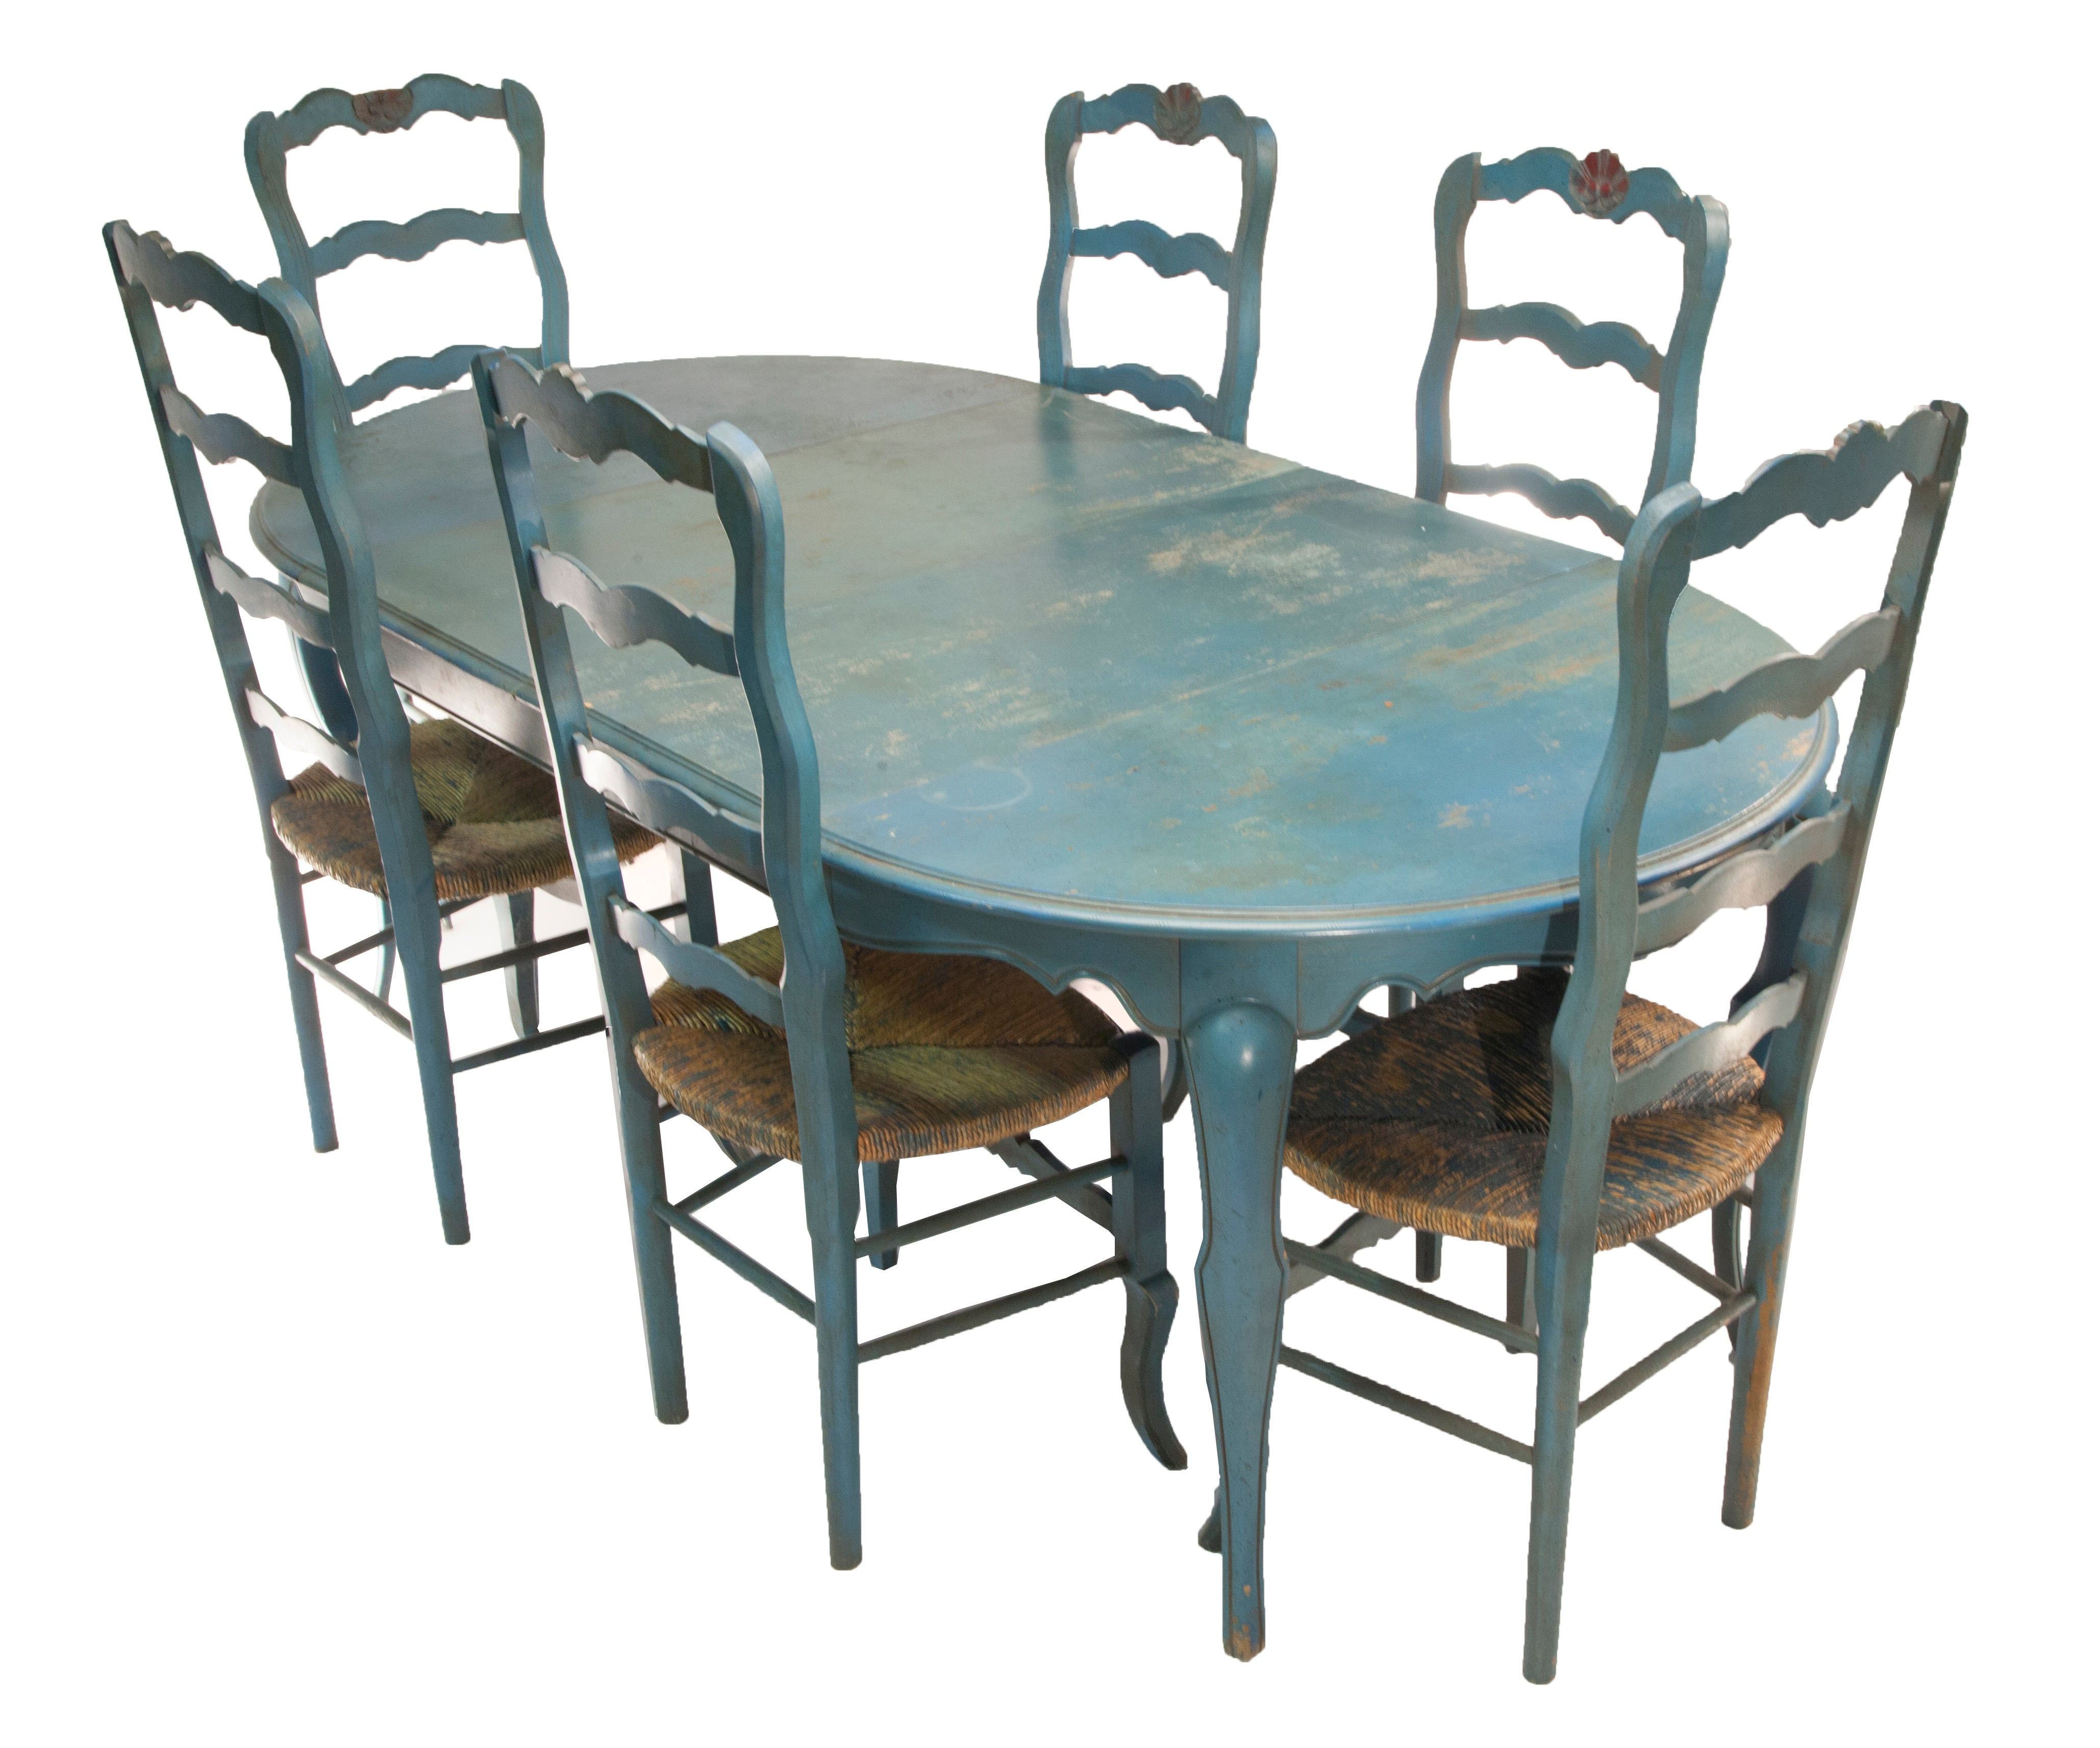 1980 Jacques Grange Table and Chairs from France For Sale at 1stdibs